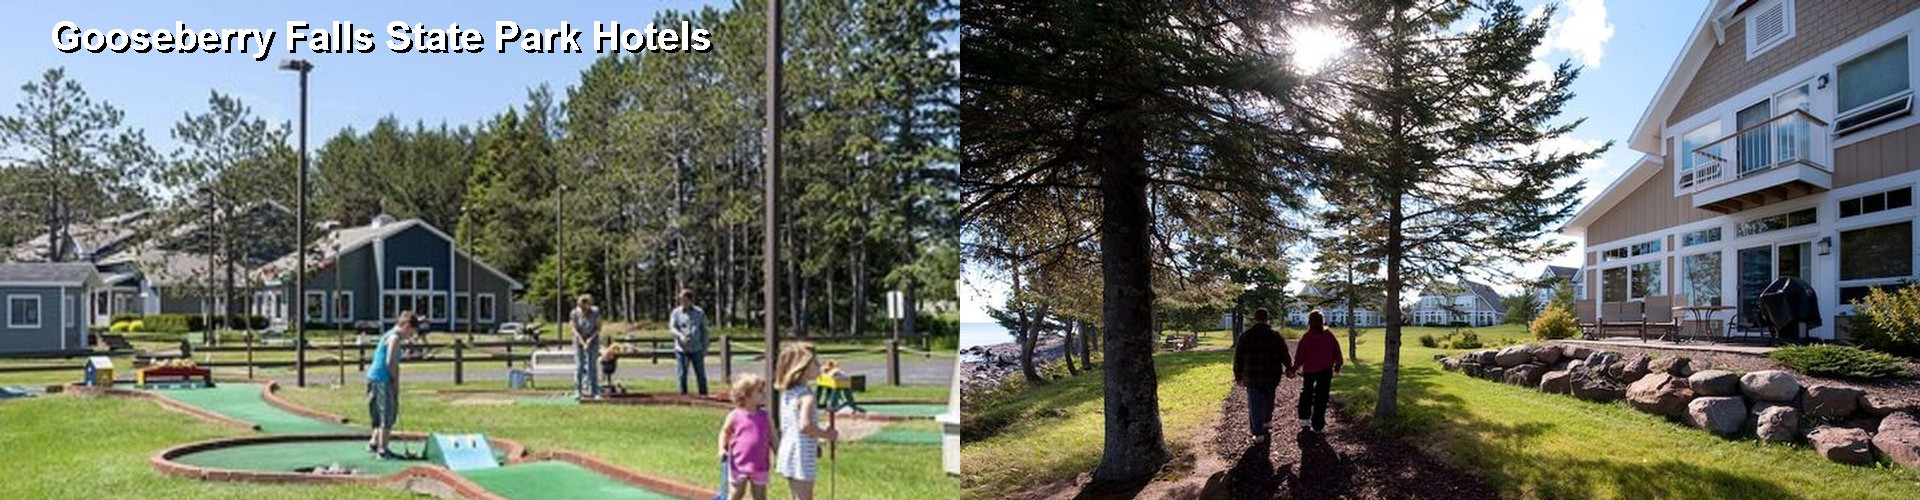 5 Best Hotels near Gooseberry Falls State Park